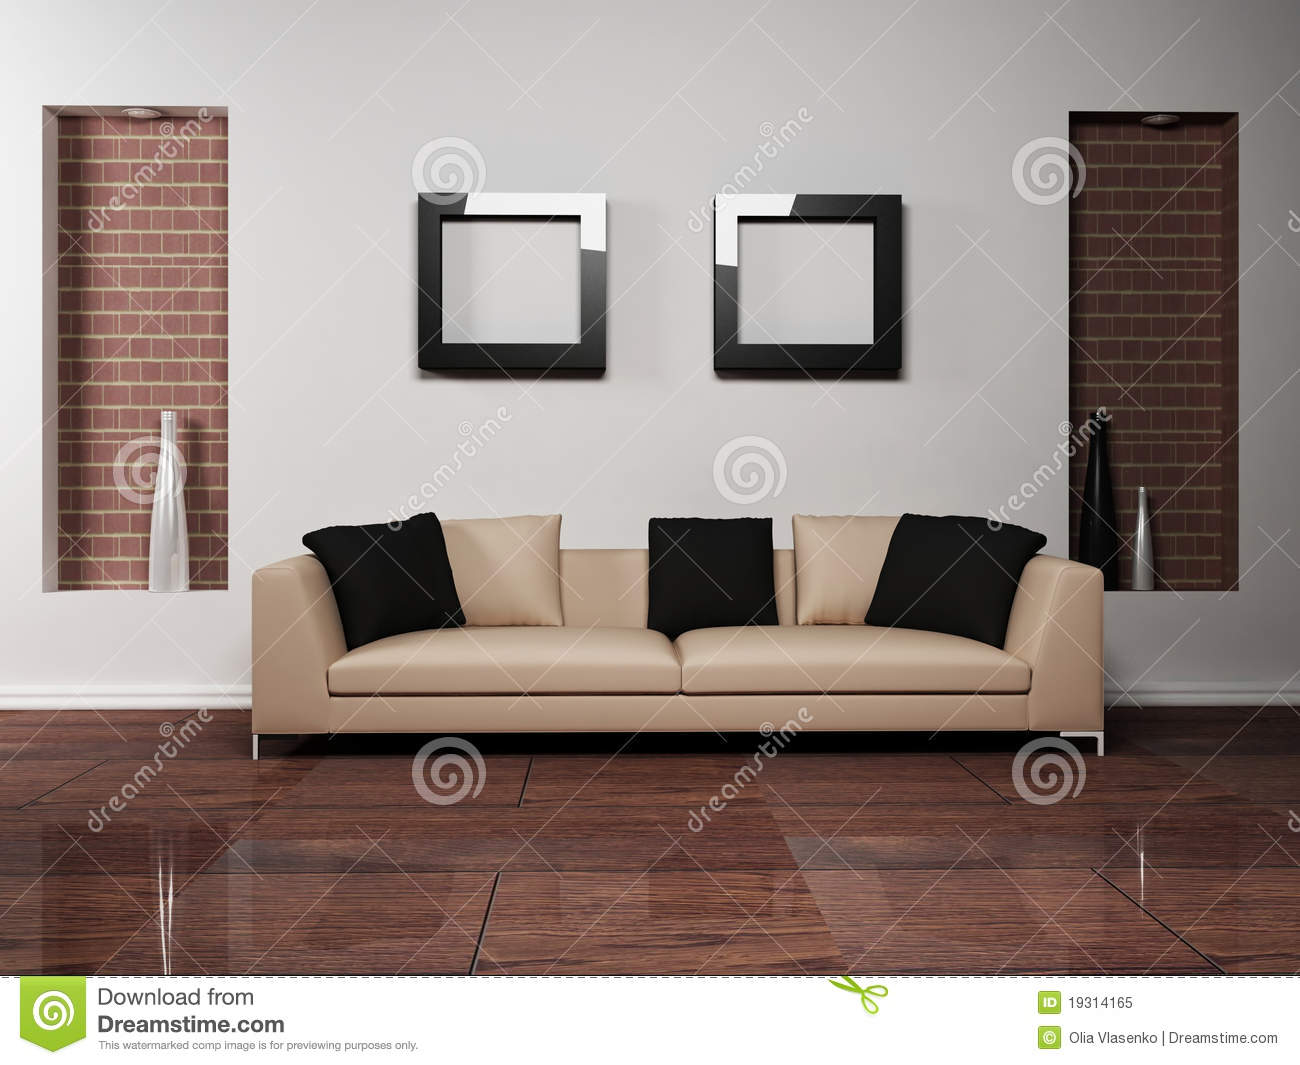 Living room design images free for Modern drawing room interior